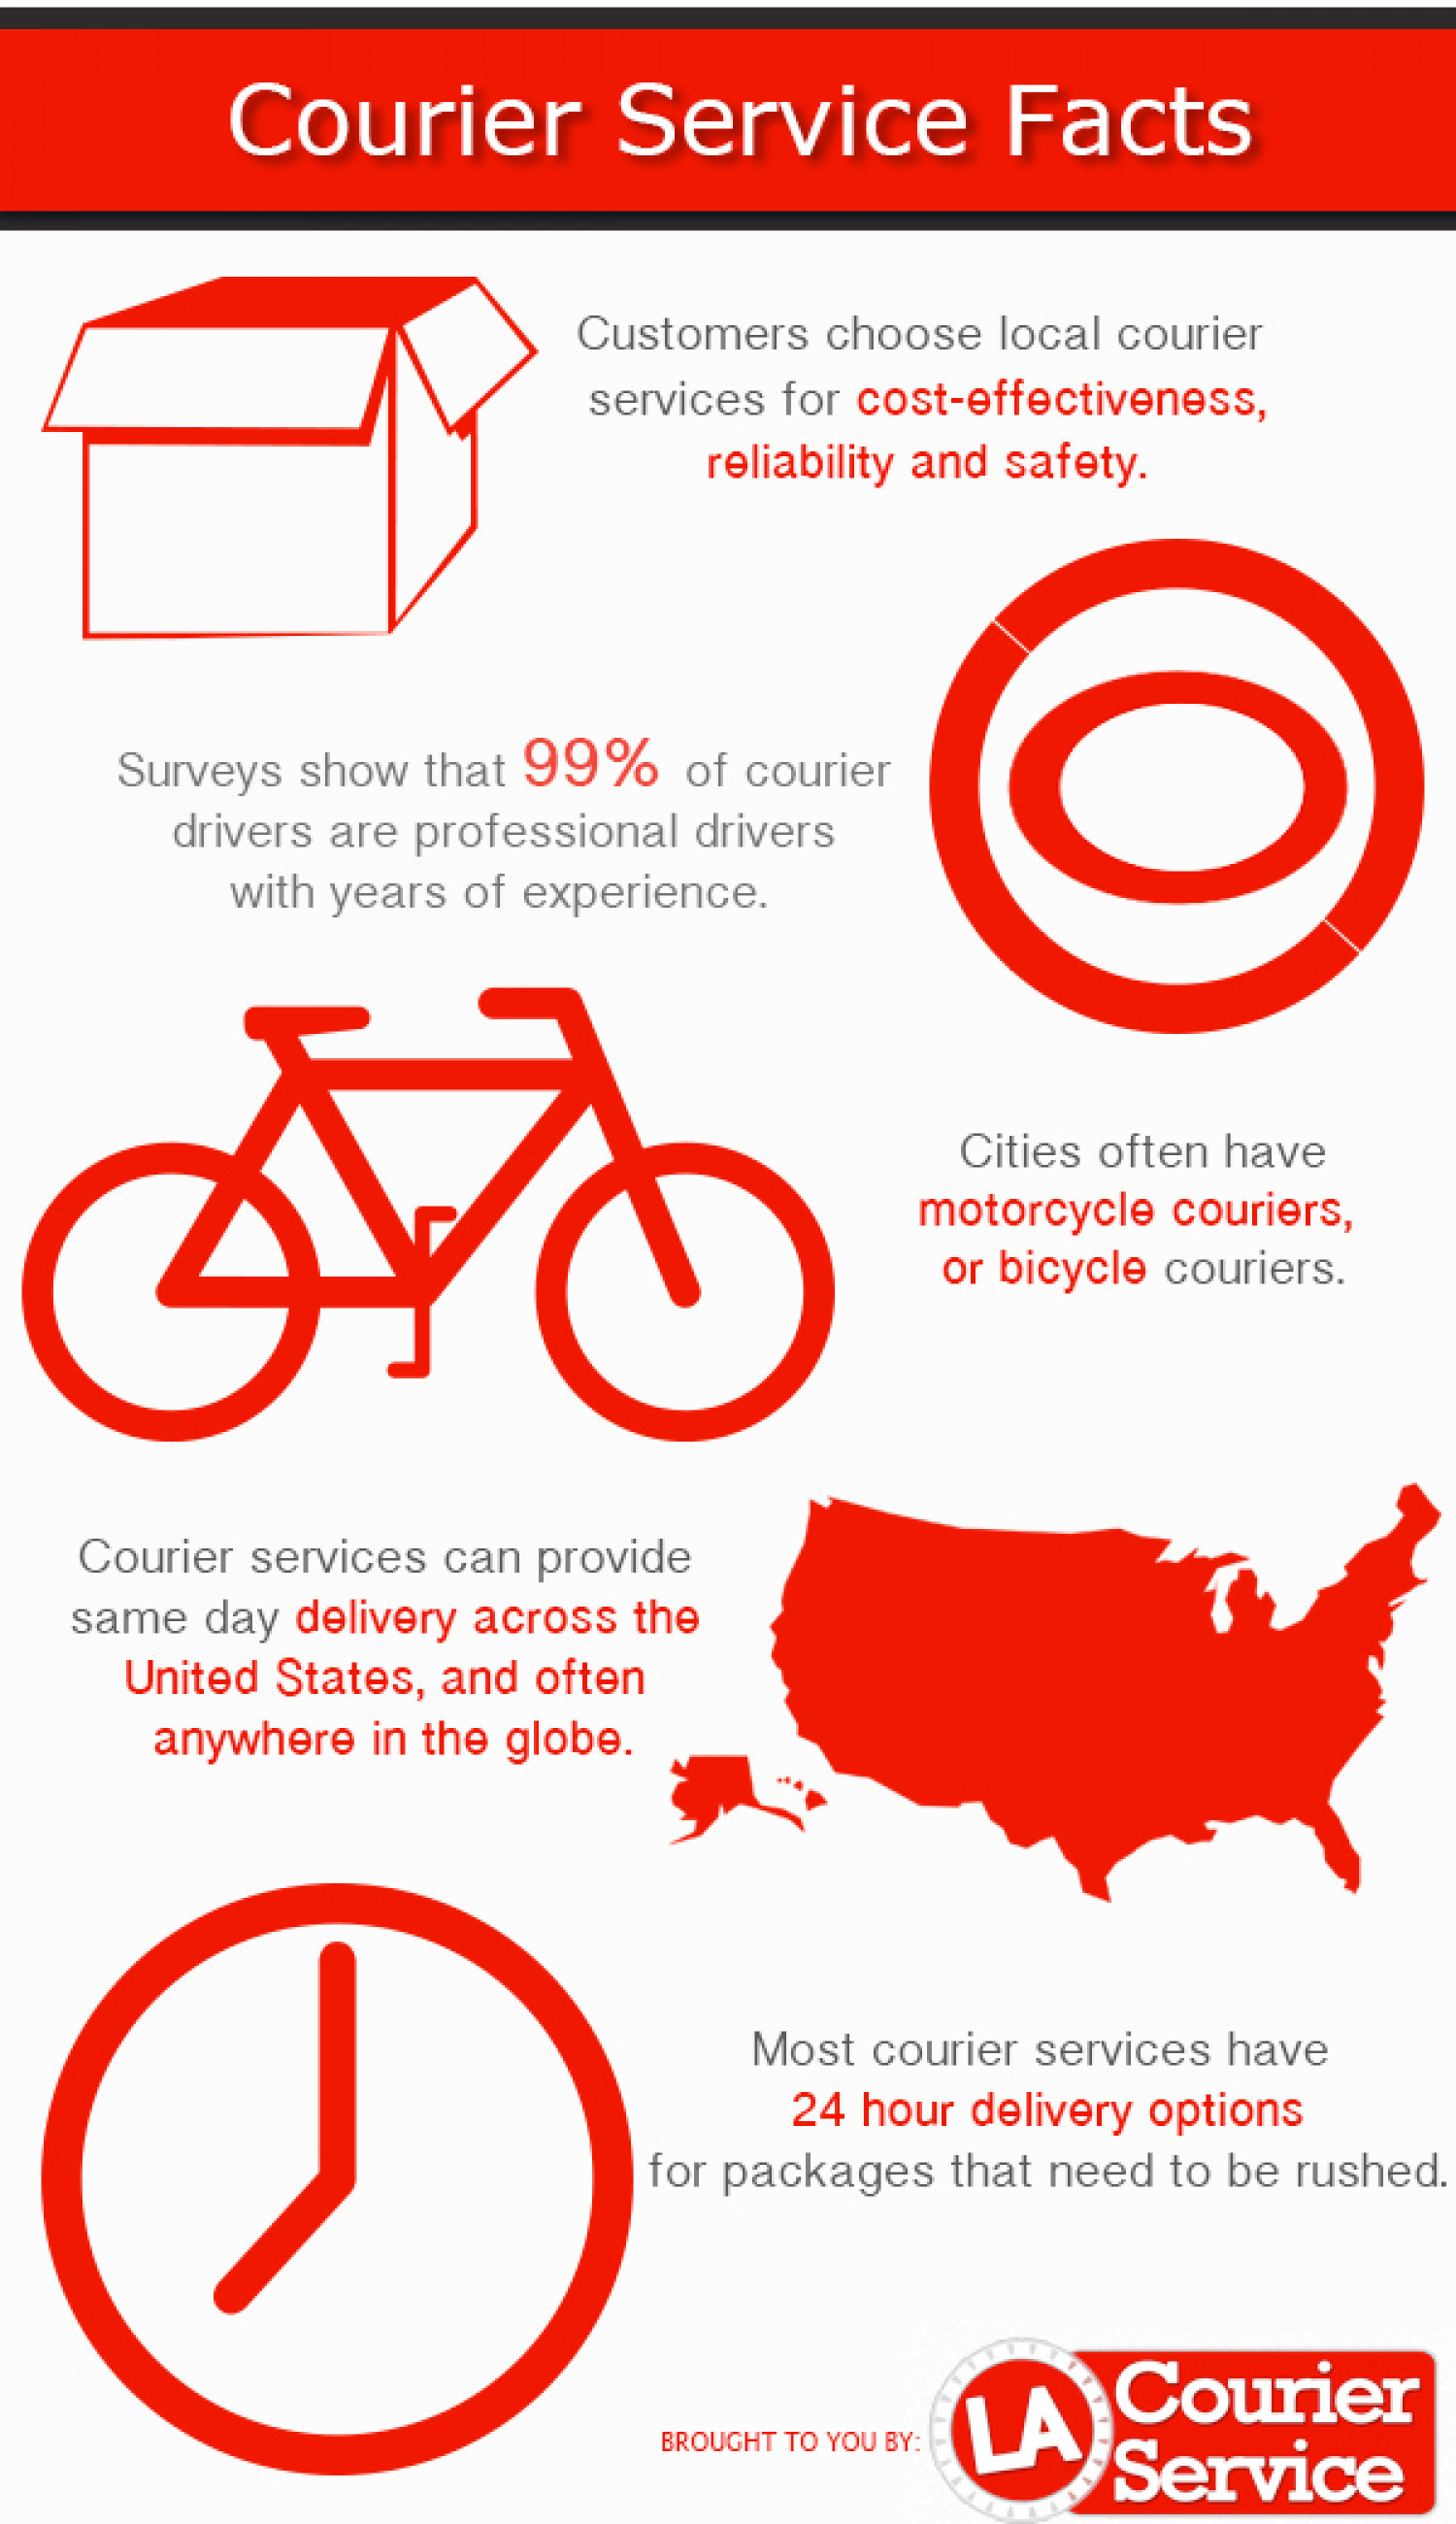 Courier Service Facts Infographic